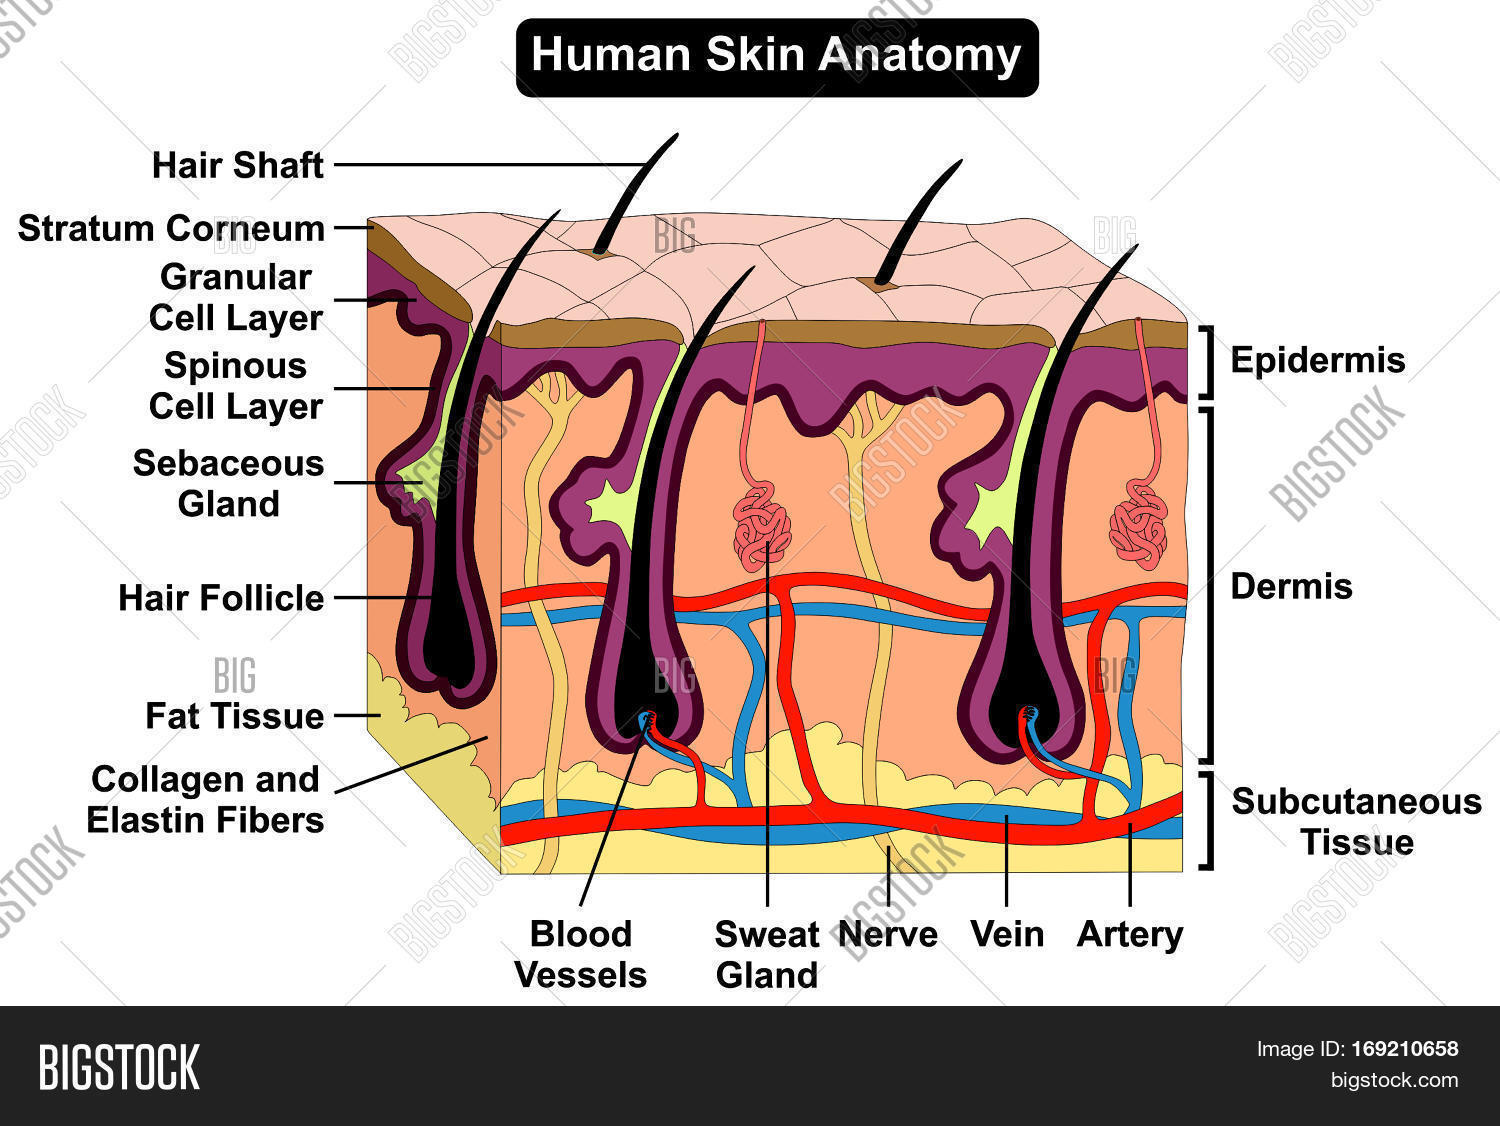 Human Skin Anatomy Image & Photo (Free Trial) | Bigstock